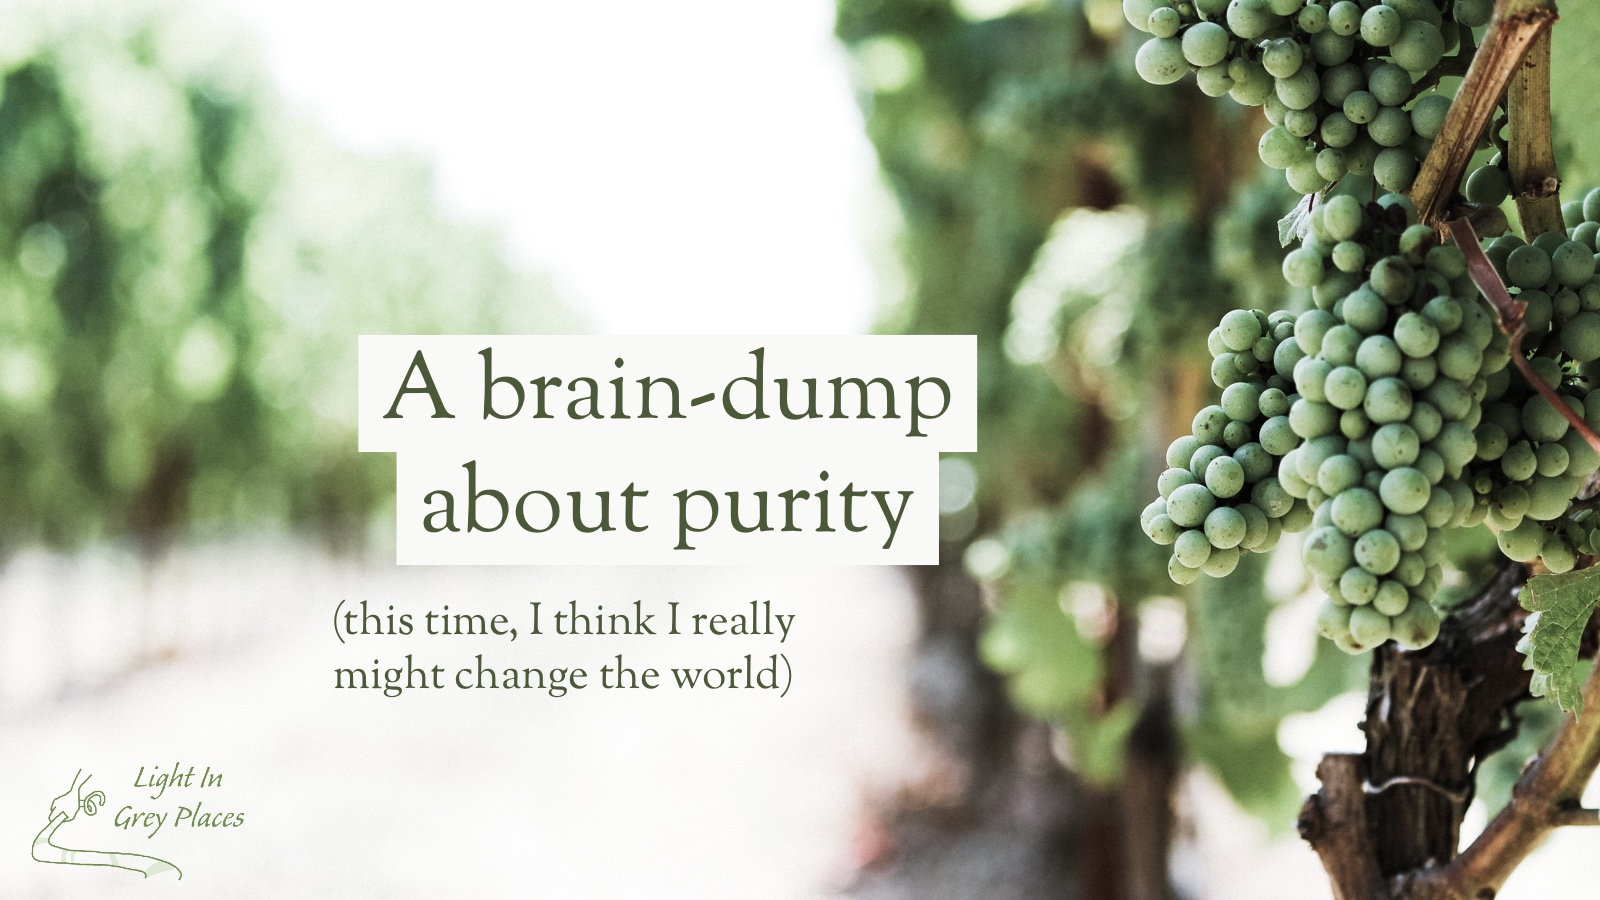 Green grapes on a vine in the sunlight. Text over the top: A brain-dump about purity (this time I think I really might change the world)